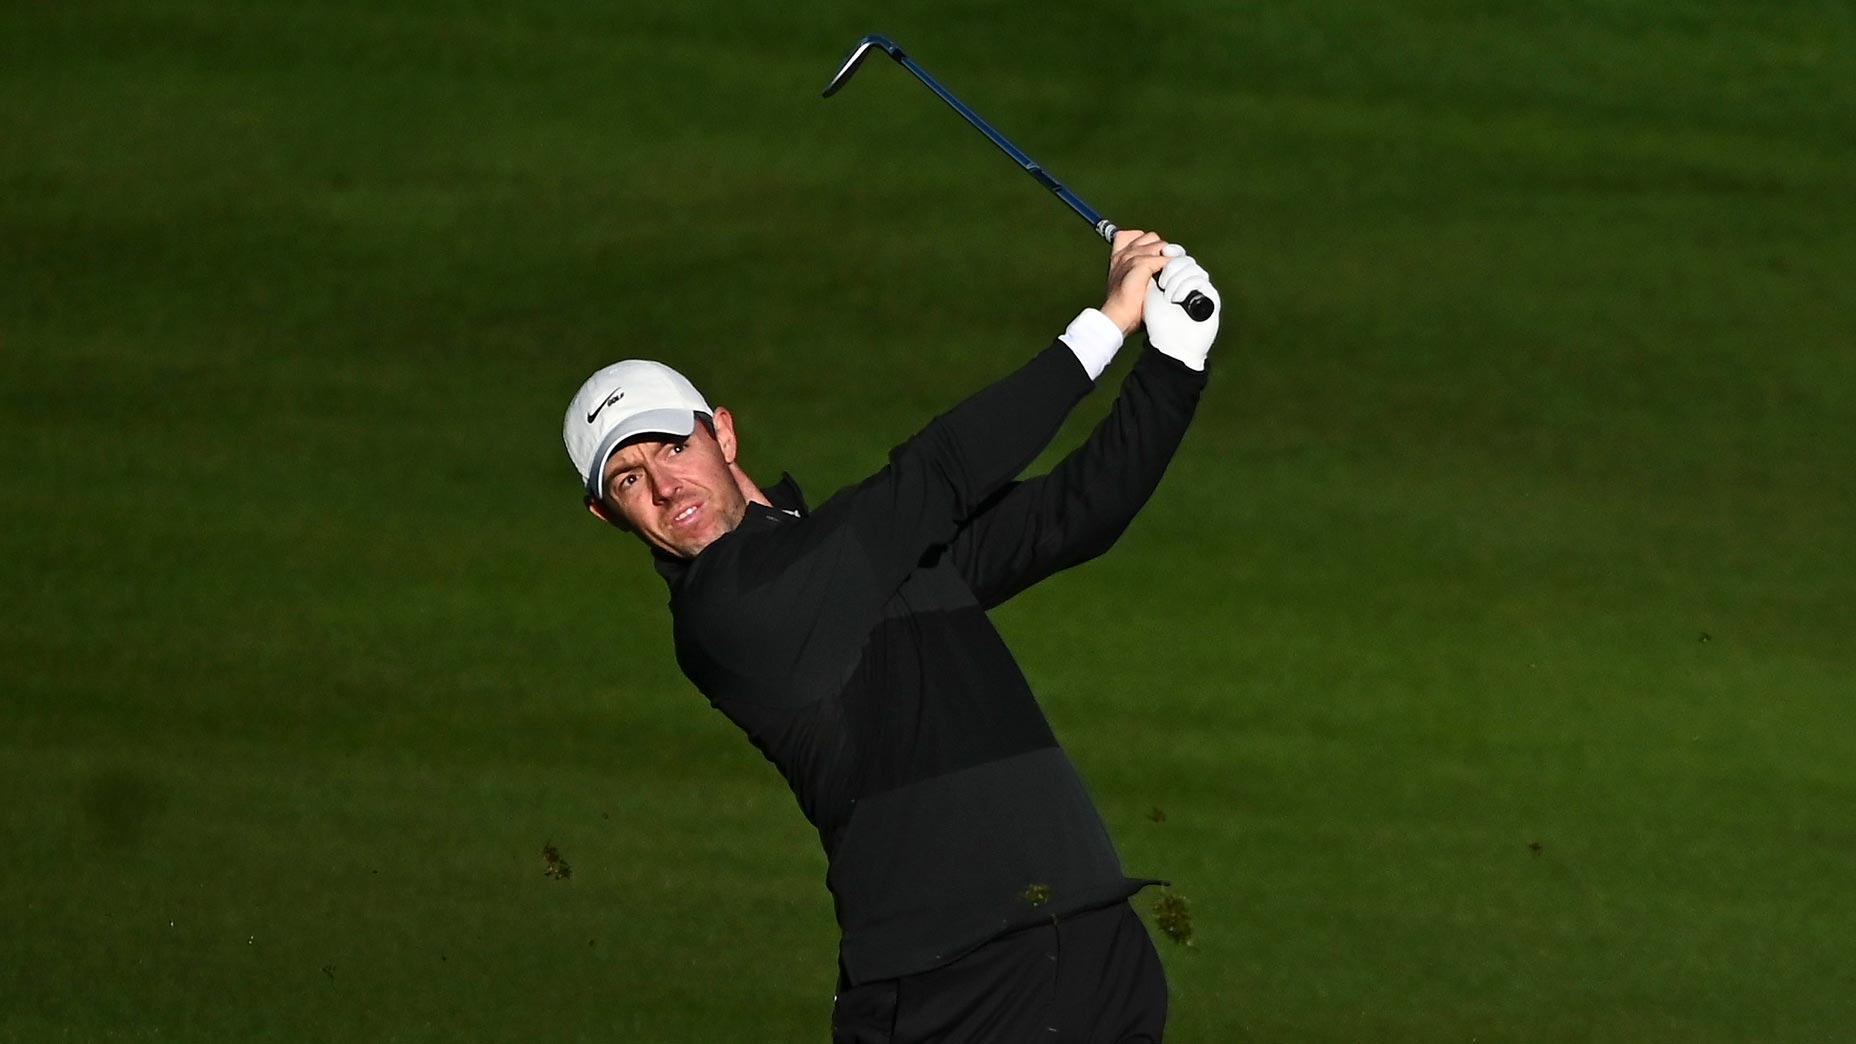 Rory McIlroy hits shot from fairway during practice round at 2021 CJ Cup